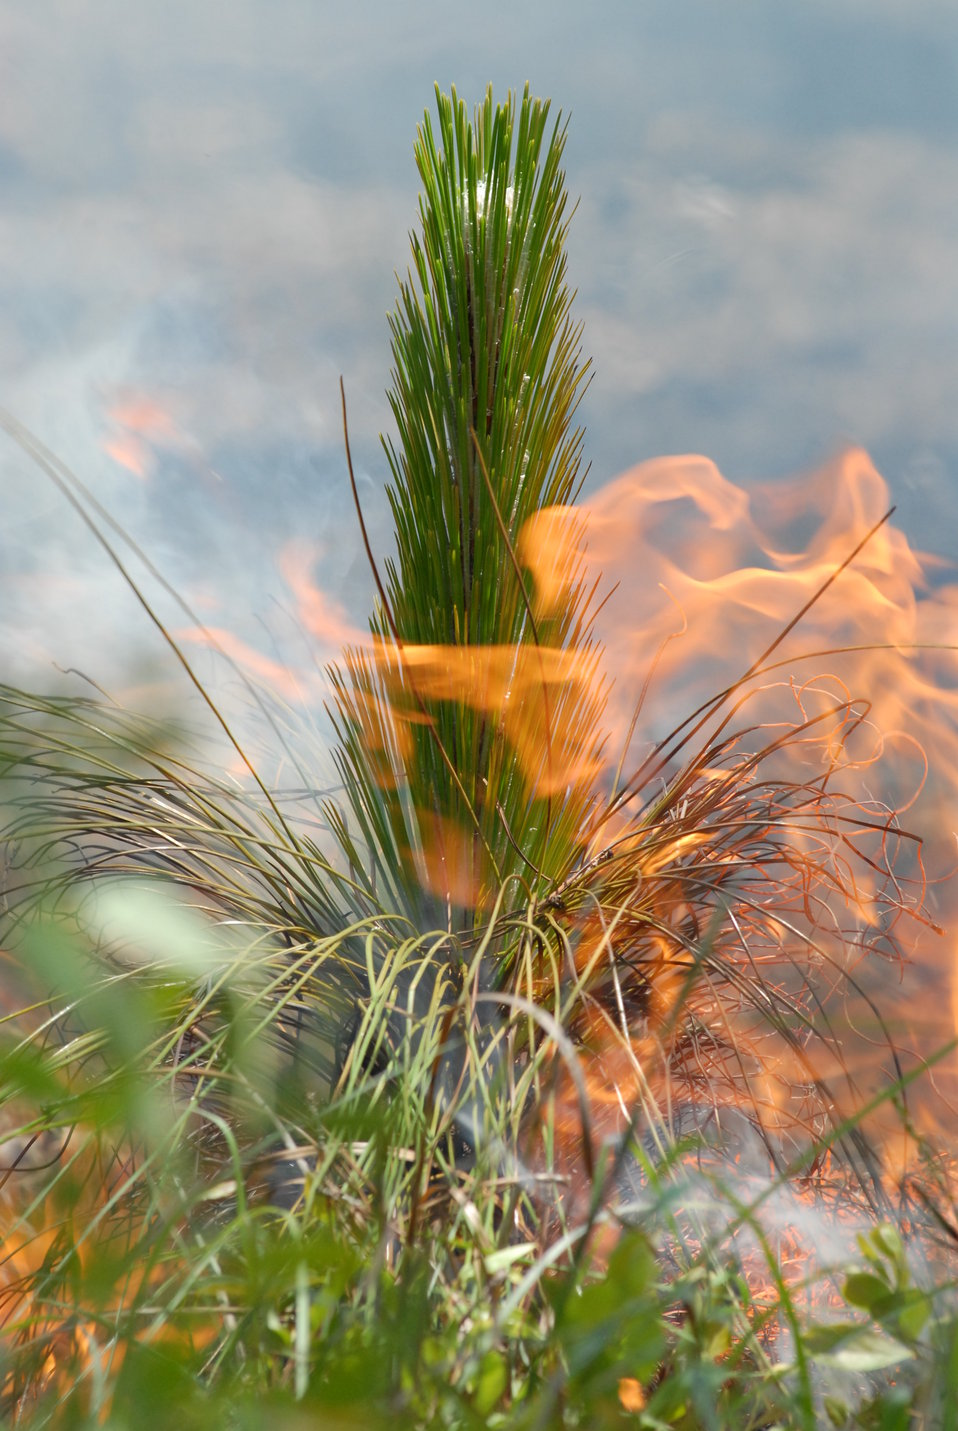 Longleaf pine on fire